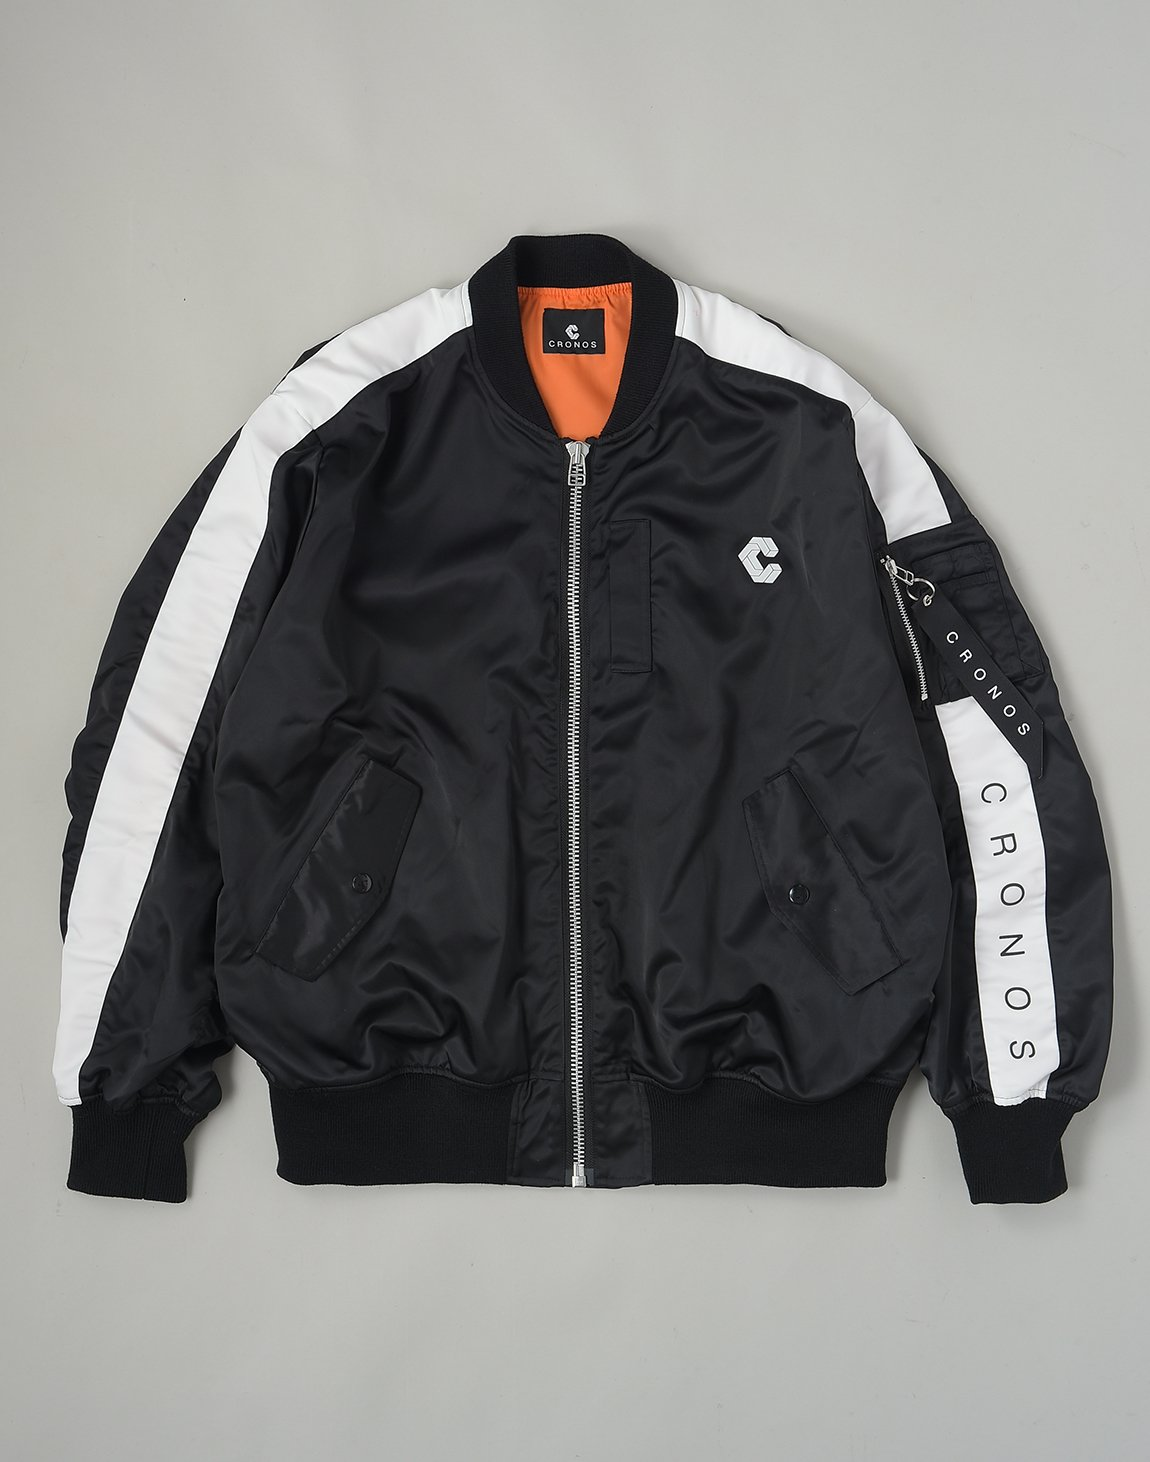 <img class='new_mark_img1' src='https://img.shop-pro.jp/img/new/icons1.gif' style='border:none;display:inline;margin:0px;padding:0px;width:auto;' />CRONOS NEW BOMBER JACKET【BLACK】